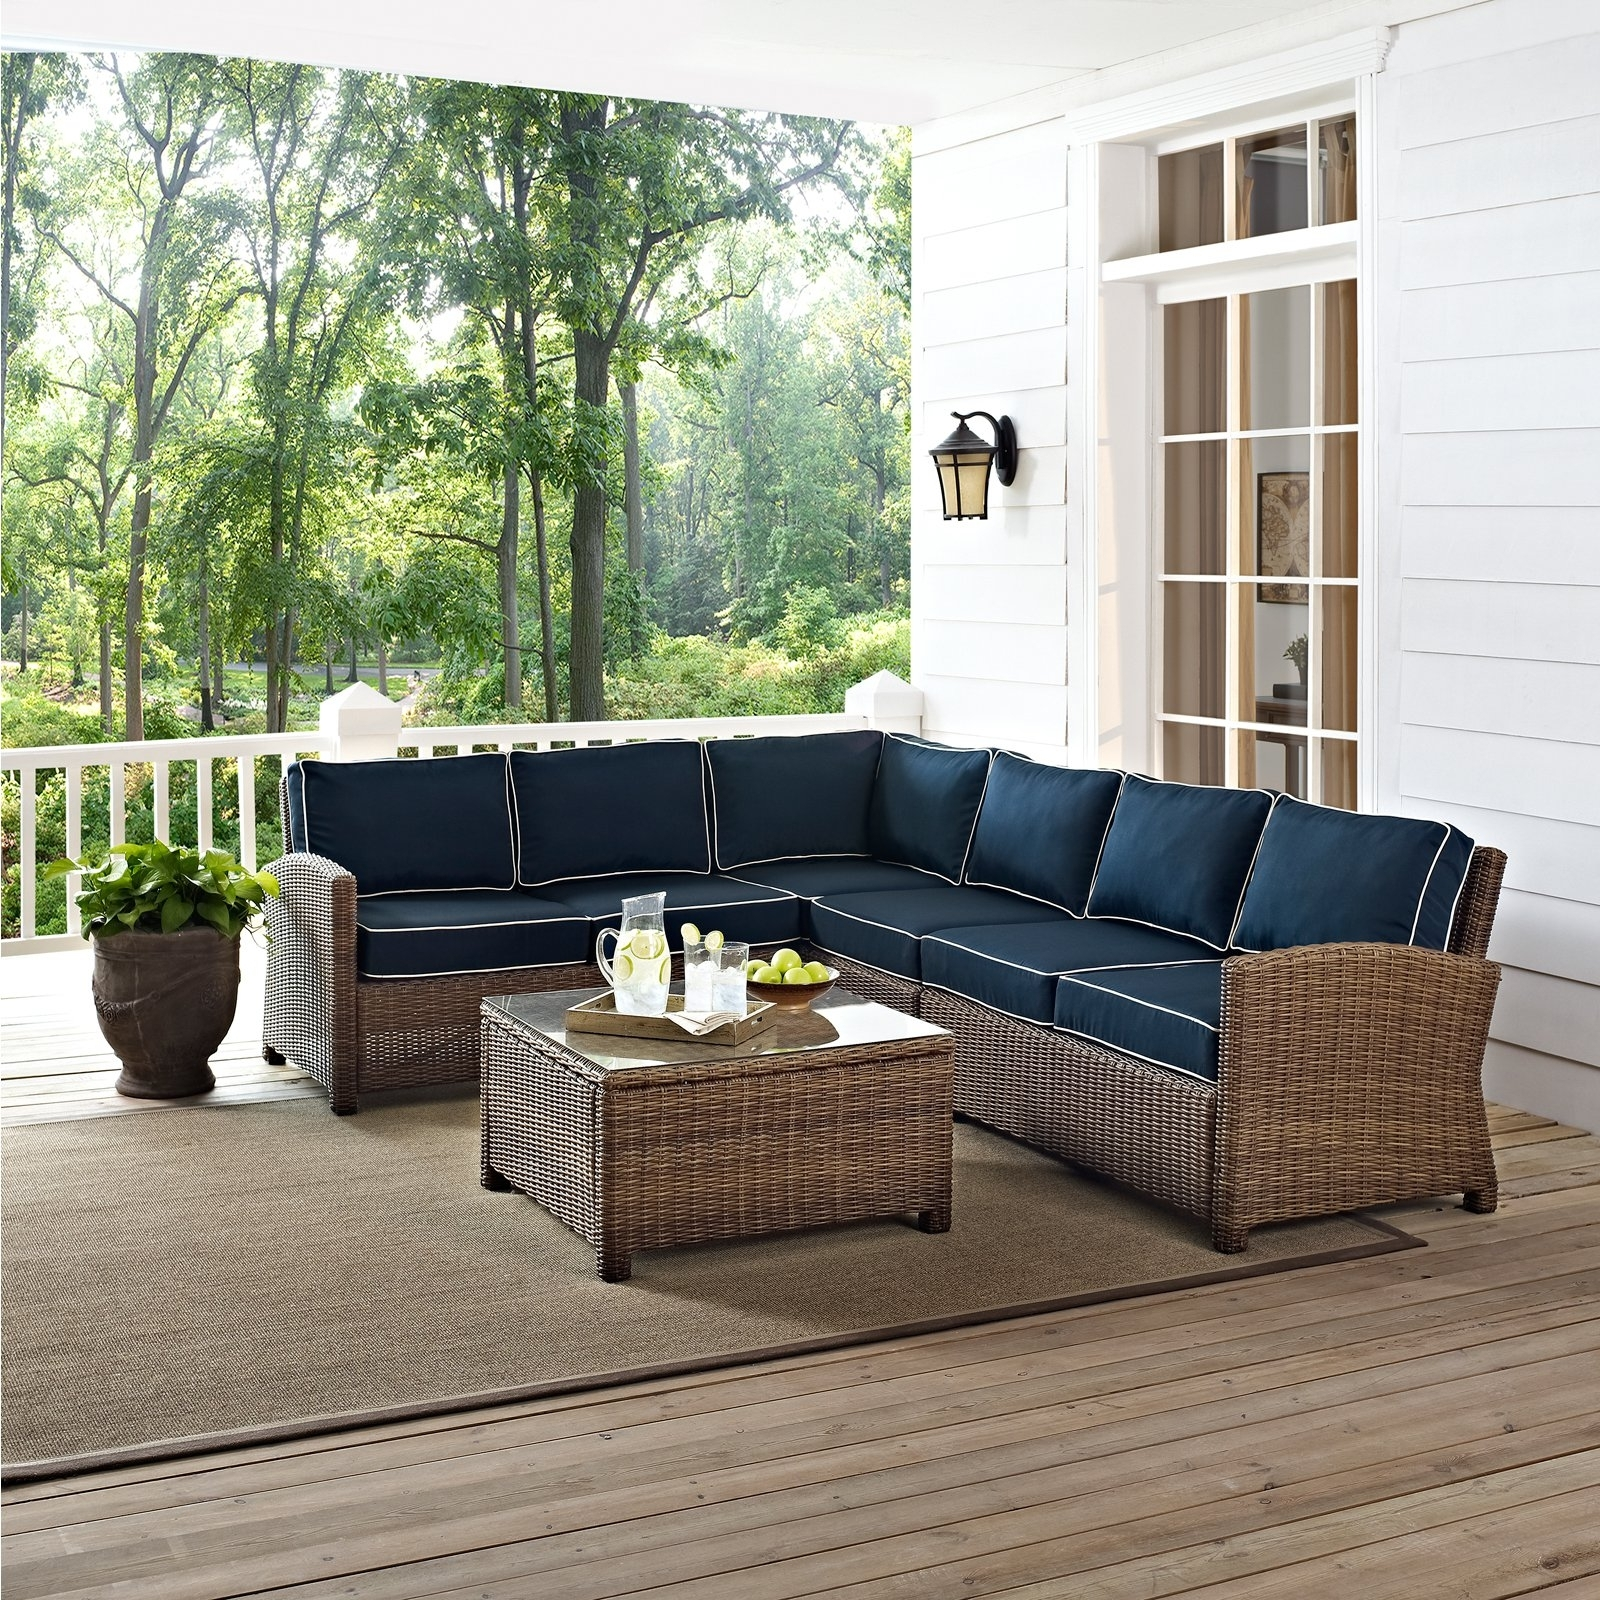 Most Recently Released Crosley Bradenton 5 Piece Outdoor Wicker Sectional Conversation Set Pertaining To Wicker 4pc Patio Conversation Sets With Navy Cushions (View 9 of 20)